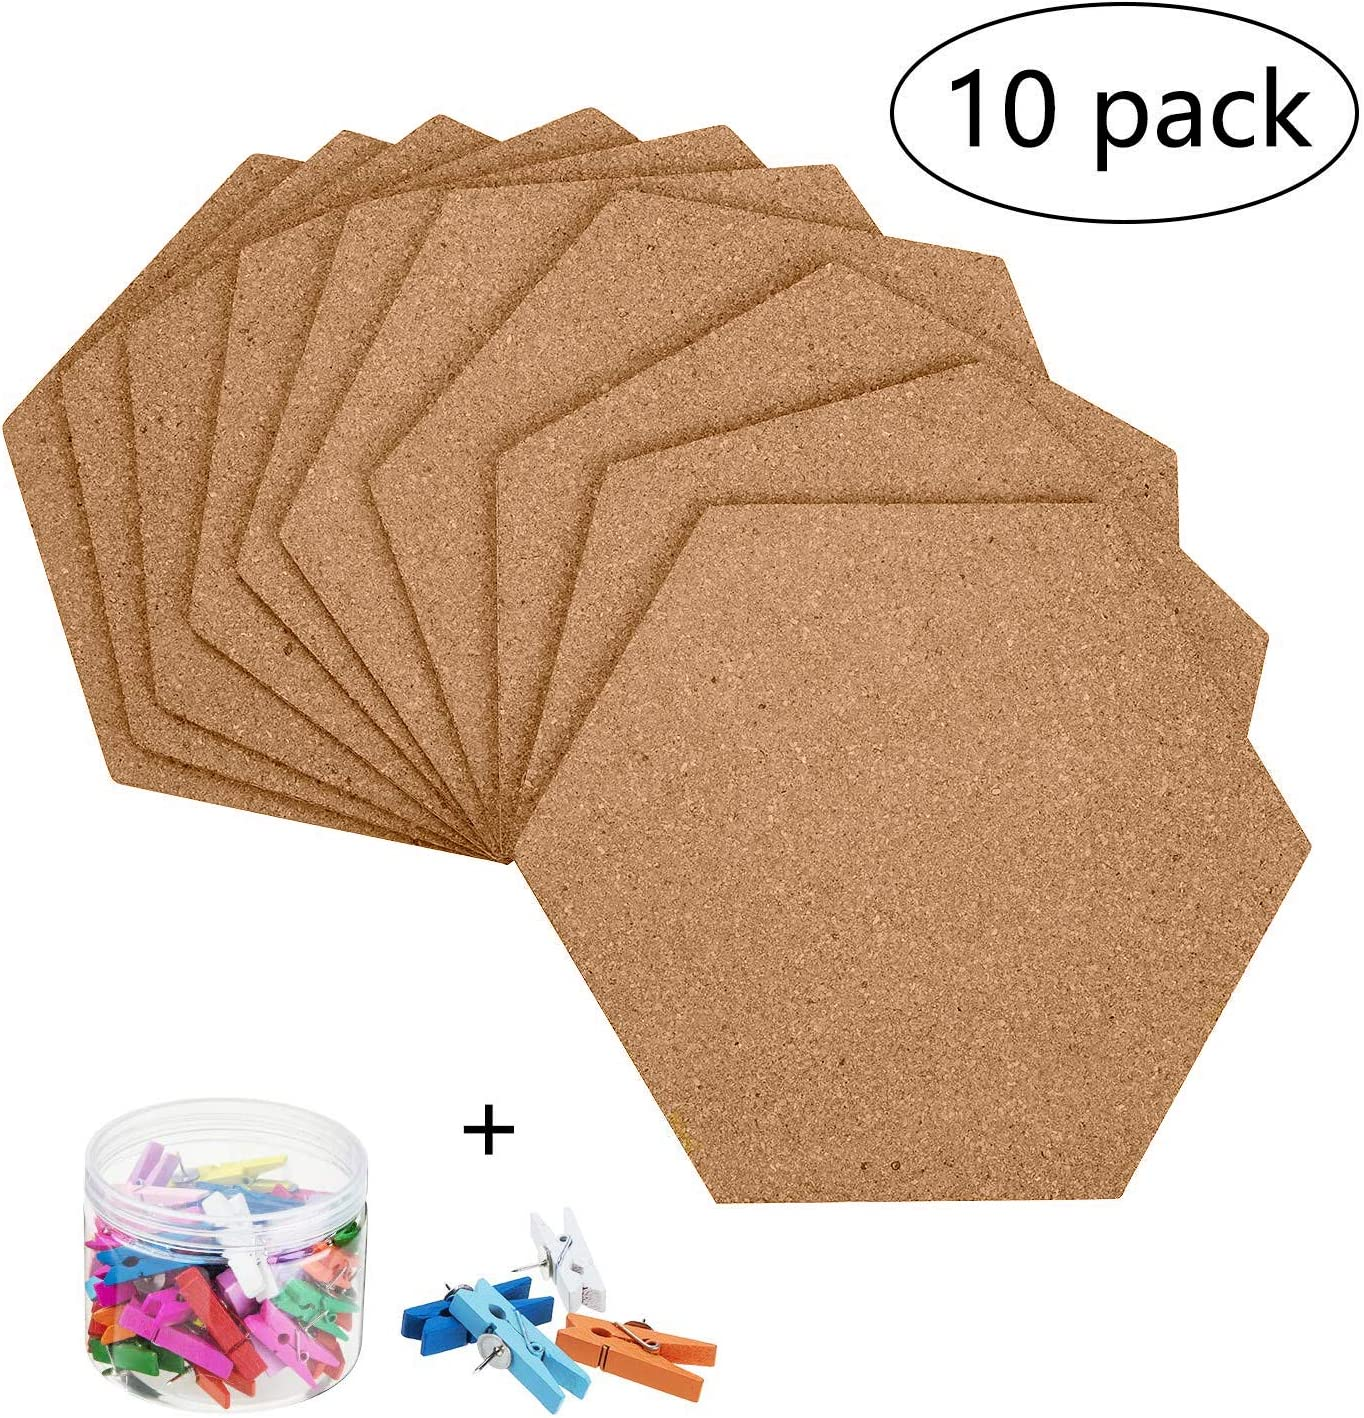 10 Pack Self-Adhesive Cork Board Tiles Mini Wand Bulletin Board with 50 Multi-Color drücken Pins